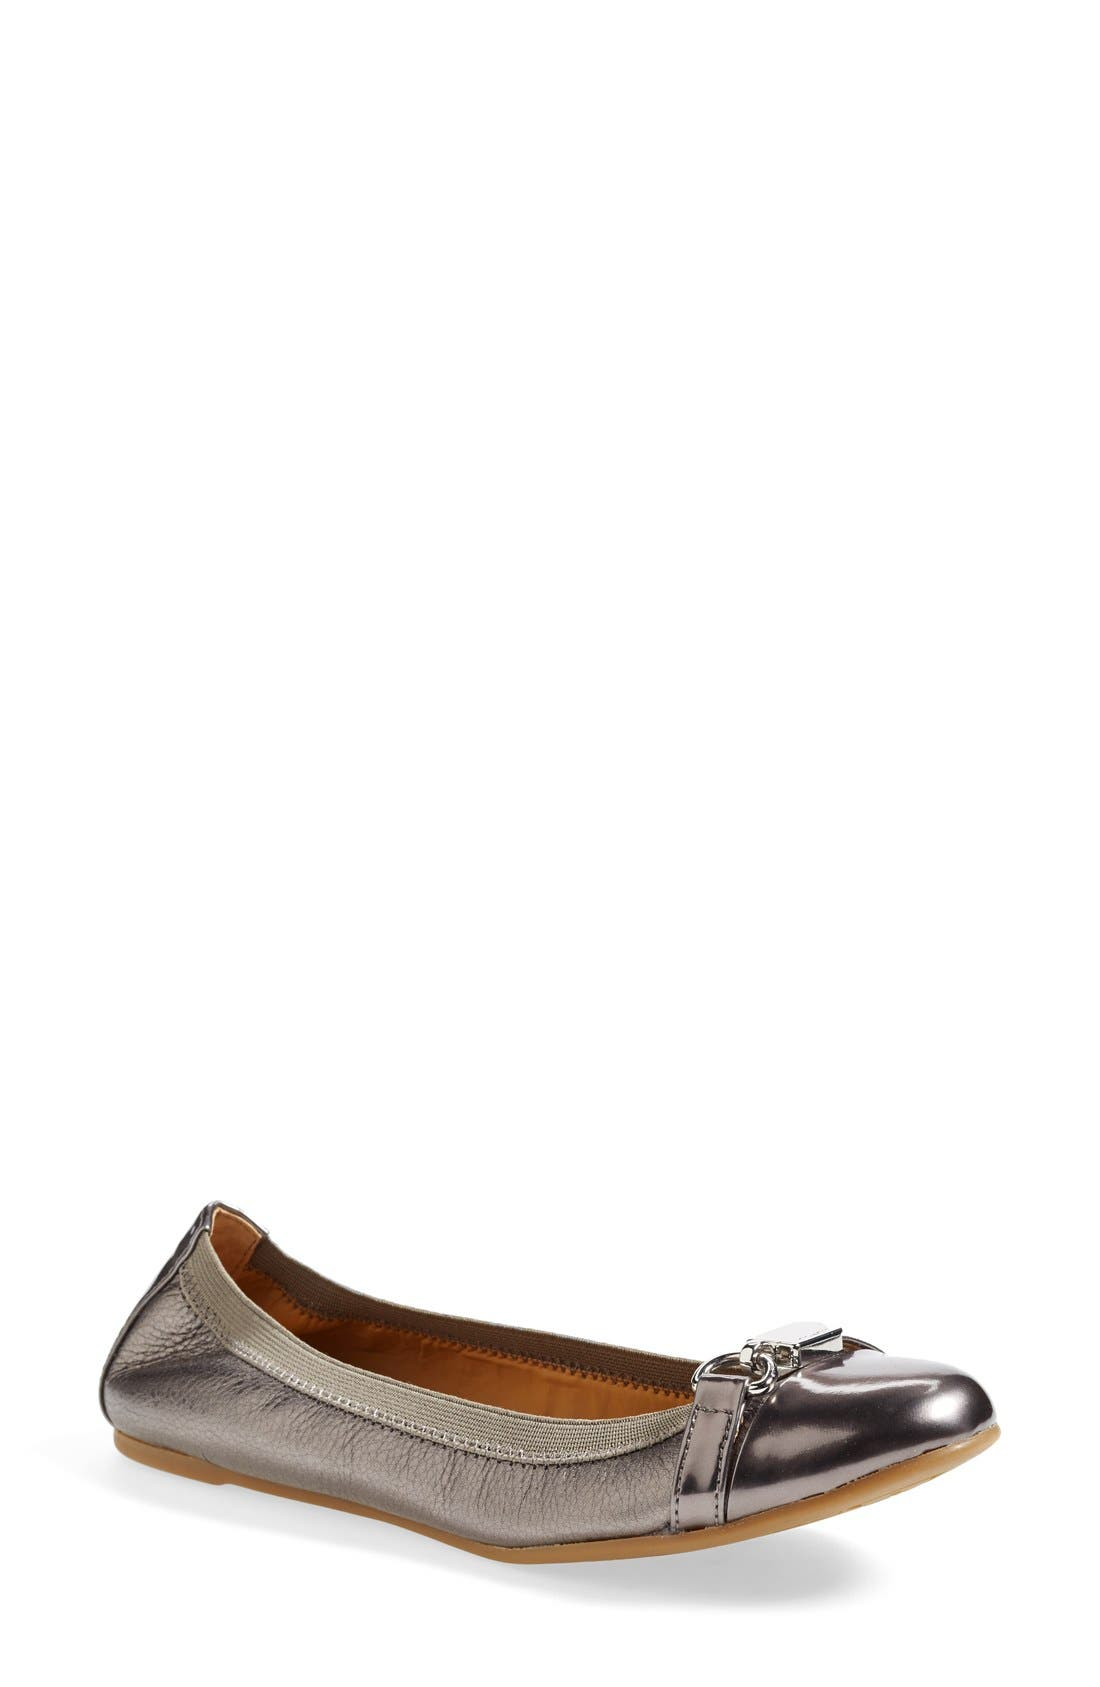 Alternate Image 1 Selected - COACH 'Dolce' Flat (Women)